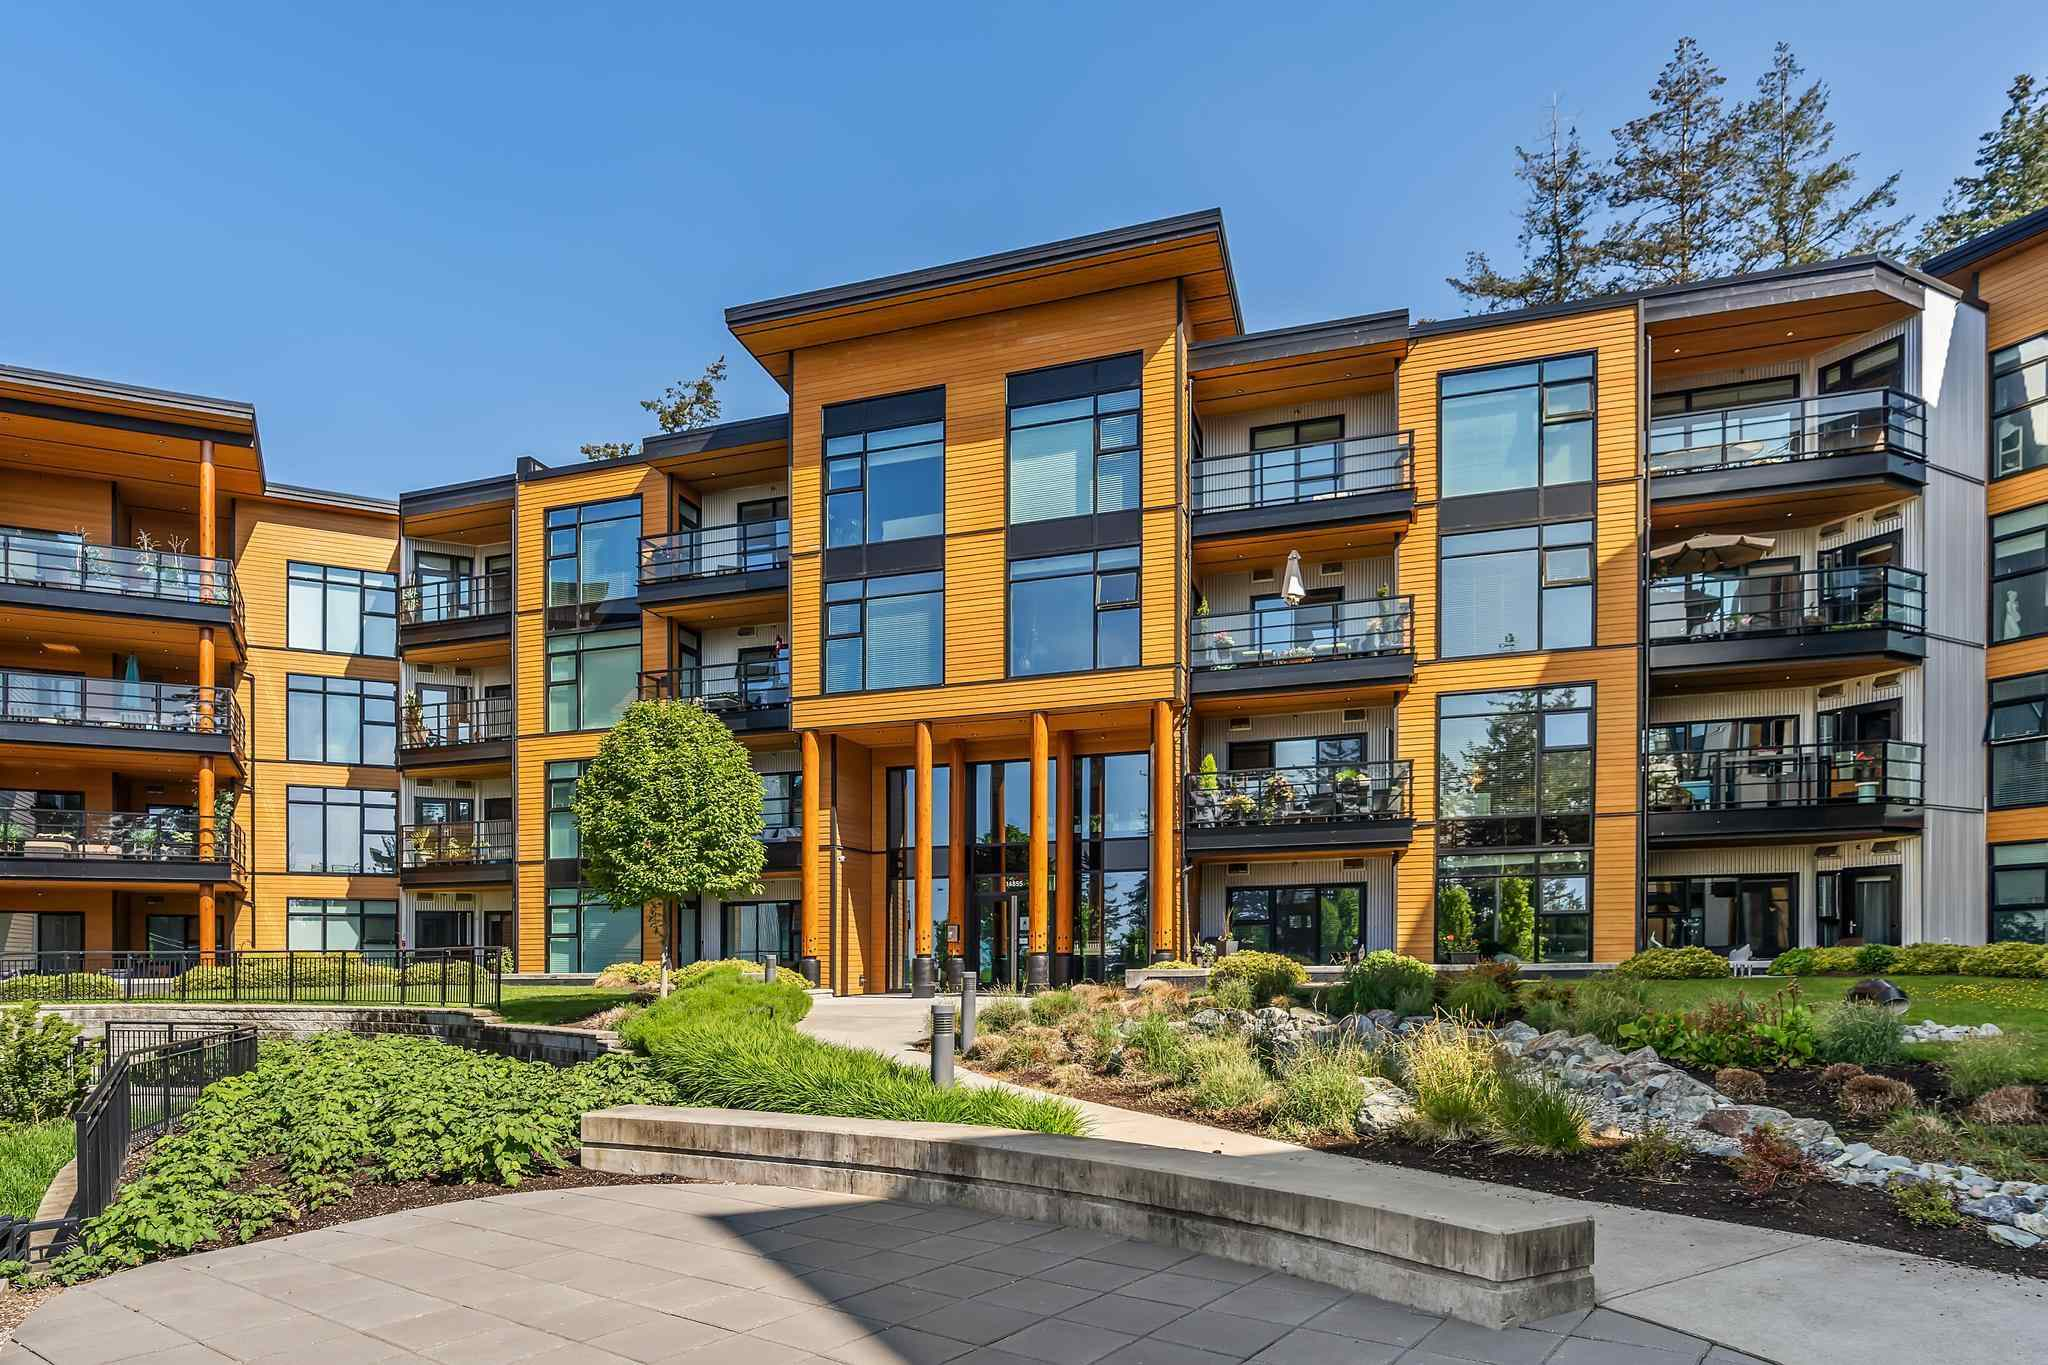 403 14855 THRIFT AVENUE - White Rock Apartment/Condo for sale, 2 Bedrooms (R2595360) - #1